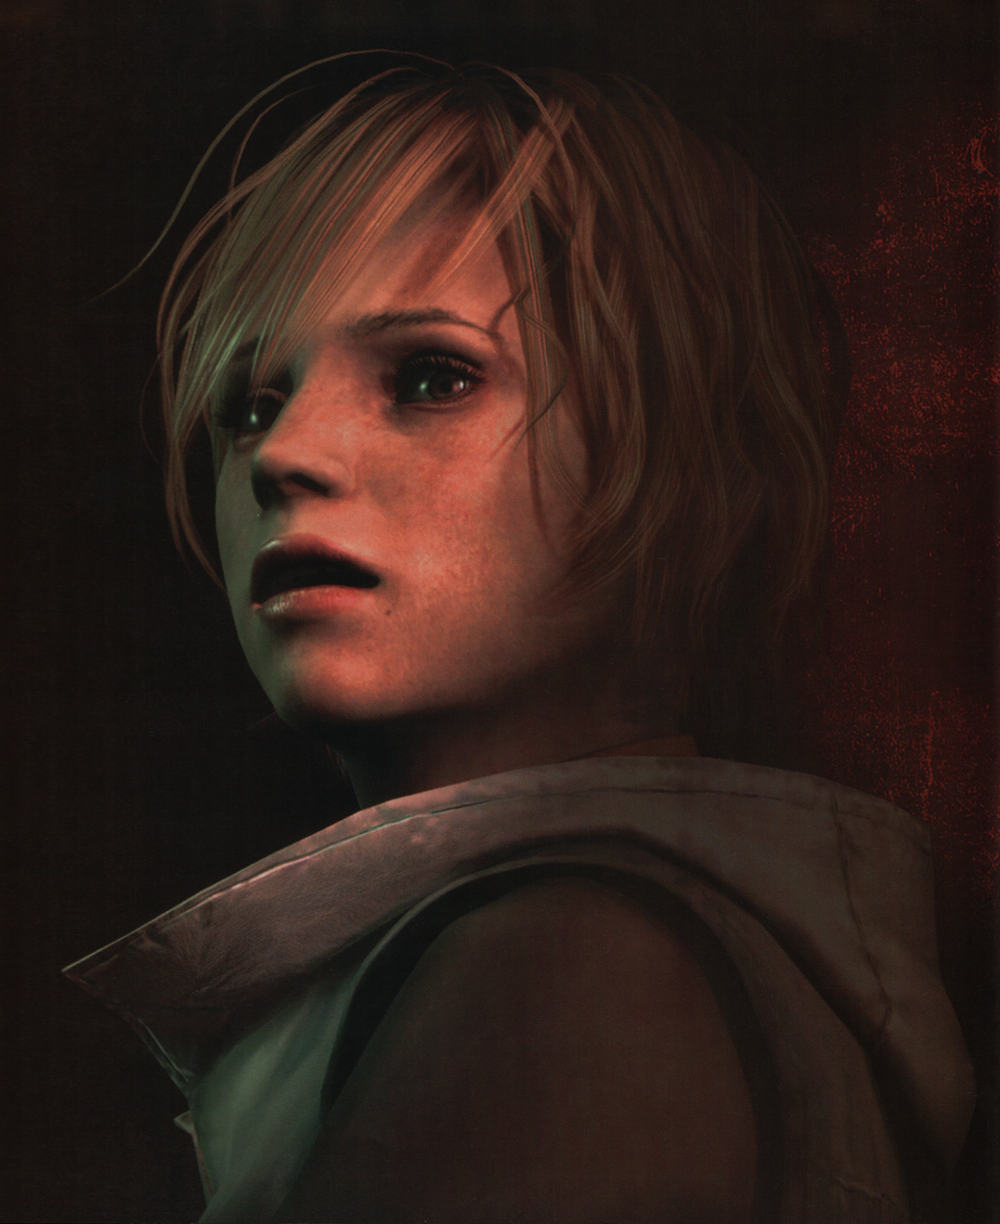 Heather Mason Silent Hill Wiki Your Special Place About